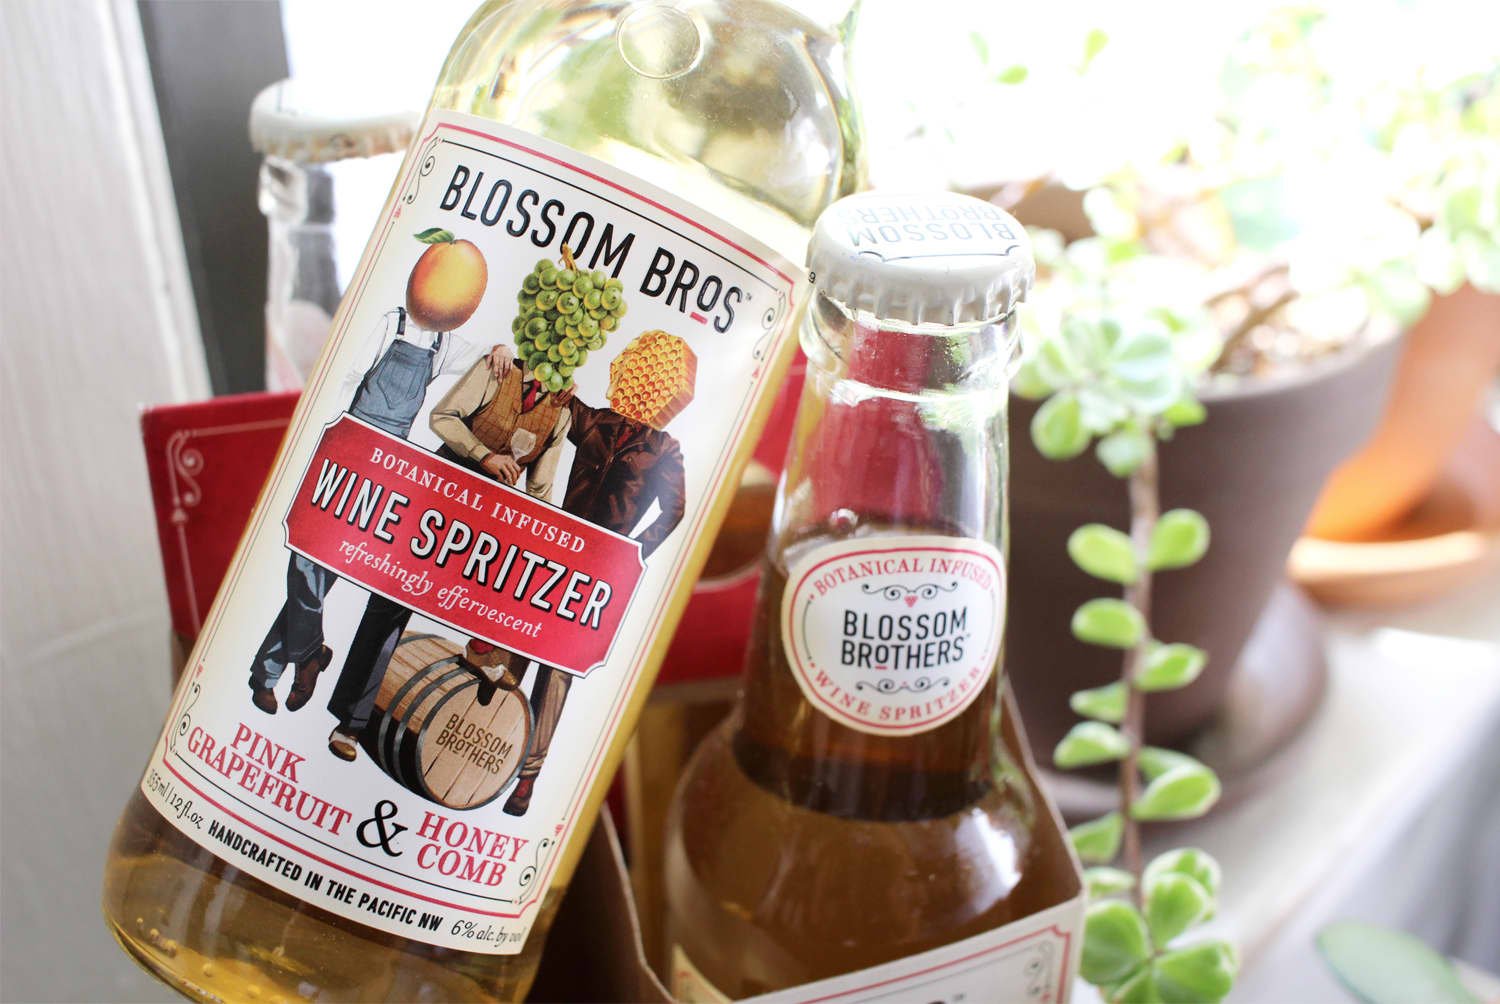 Blossom Brothers Wine Spritzers